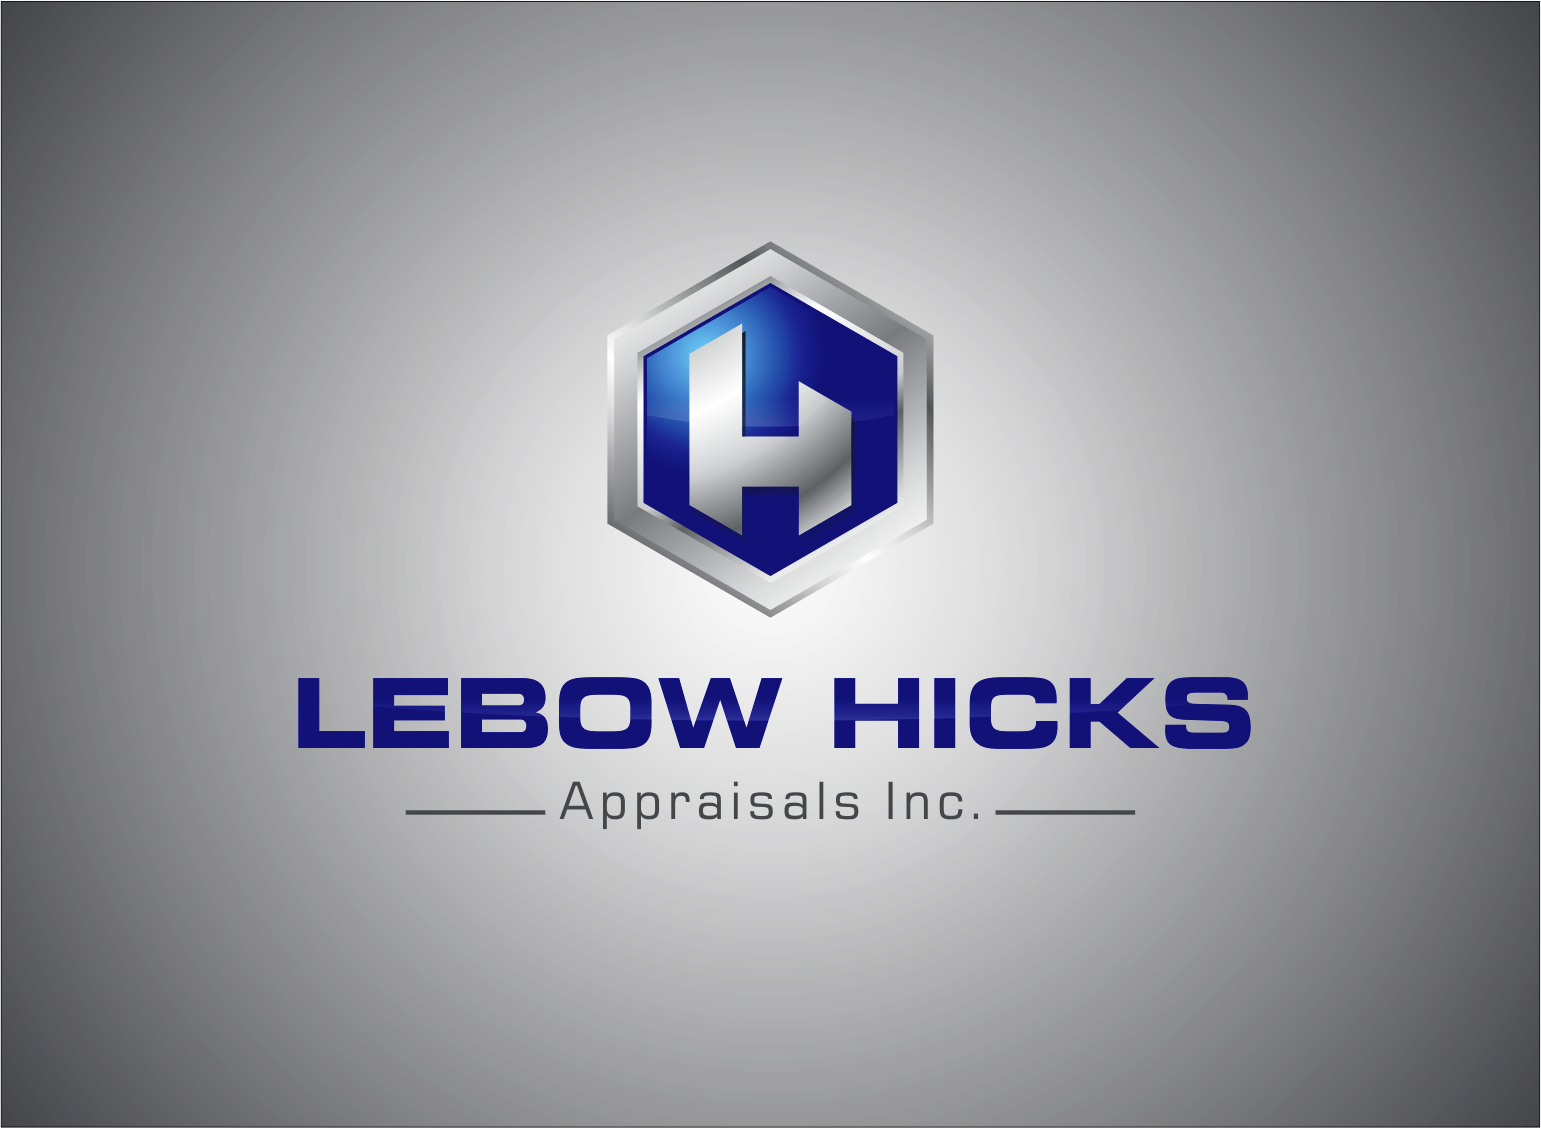 Logo Design by Armada Jamaluddin - Entry No. 124 in the Logo Design Contest Fun Logo Design for Lebow, Hicks Appraisal Inc..